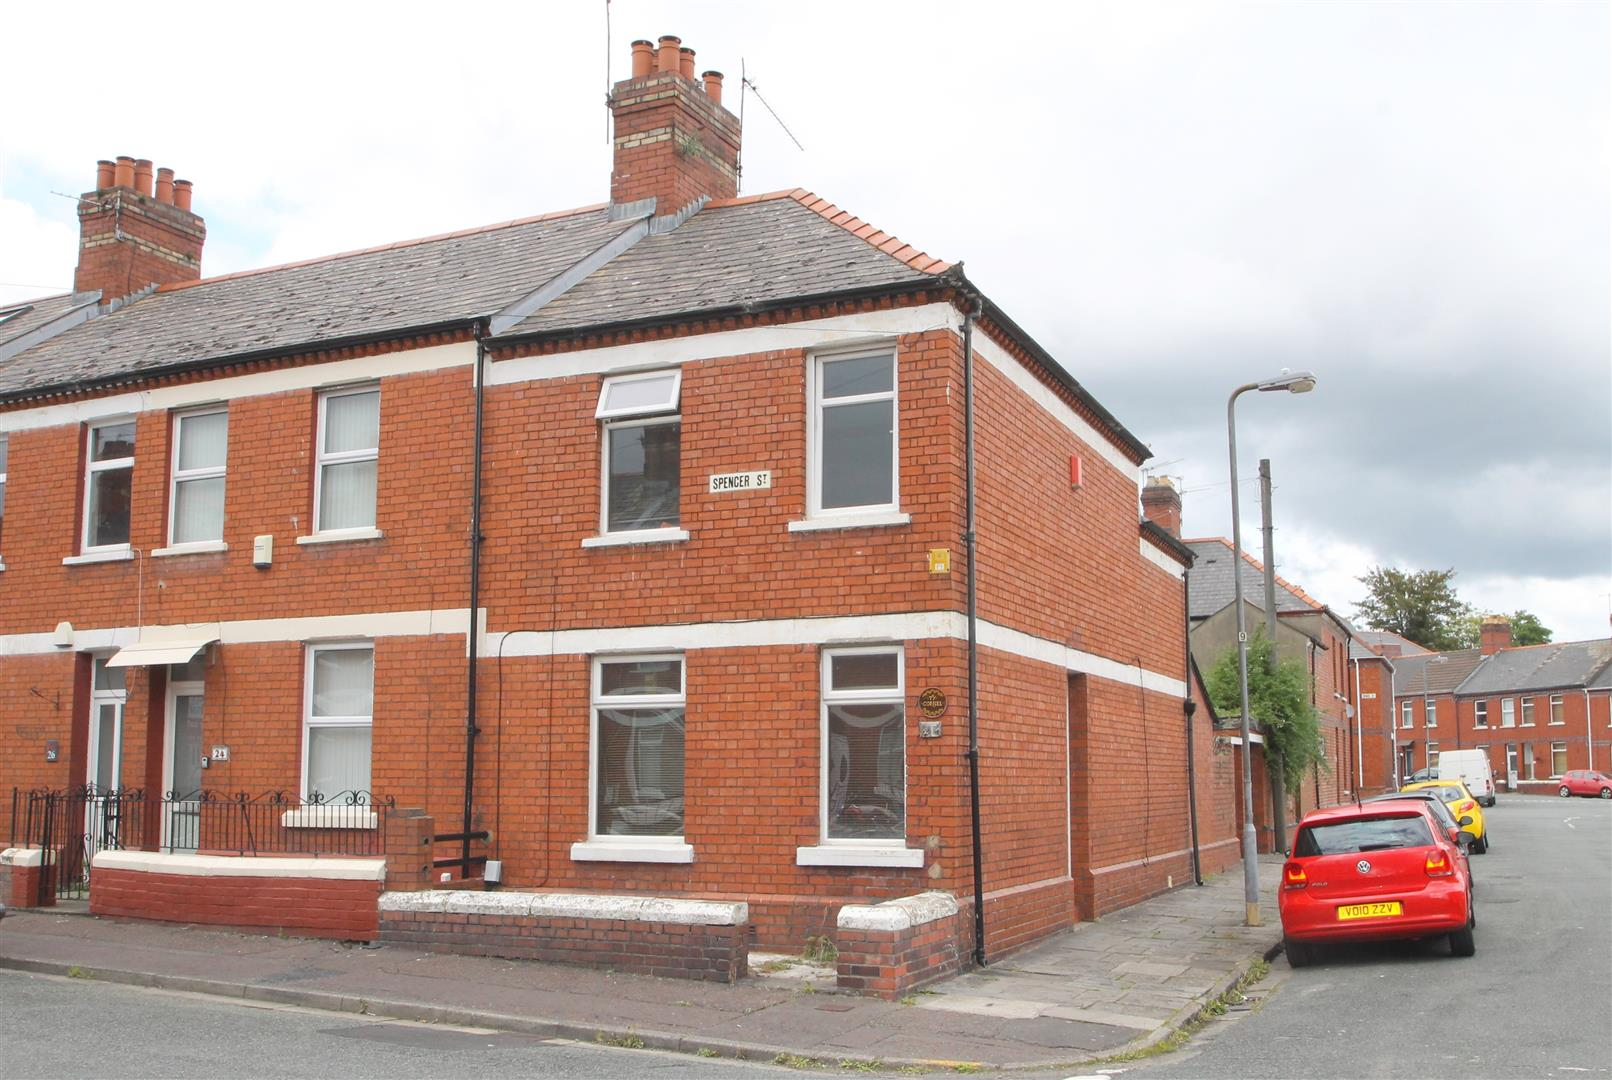 3 Bedrooms End Of Terrace House for sale in Spencer Street, Cardiff